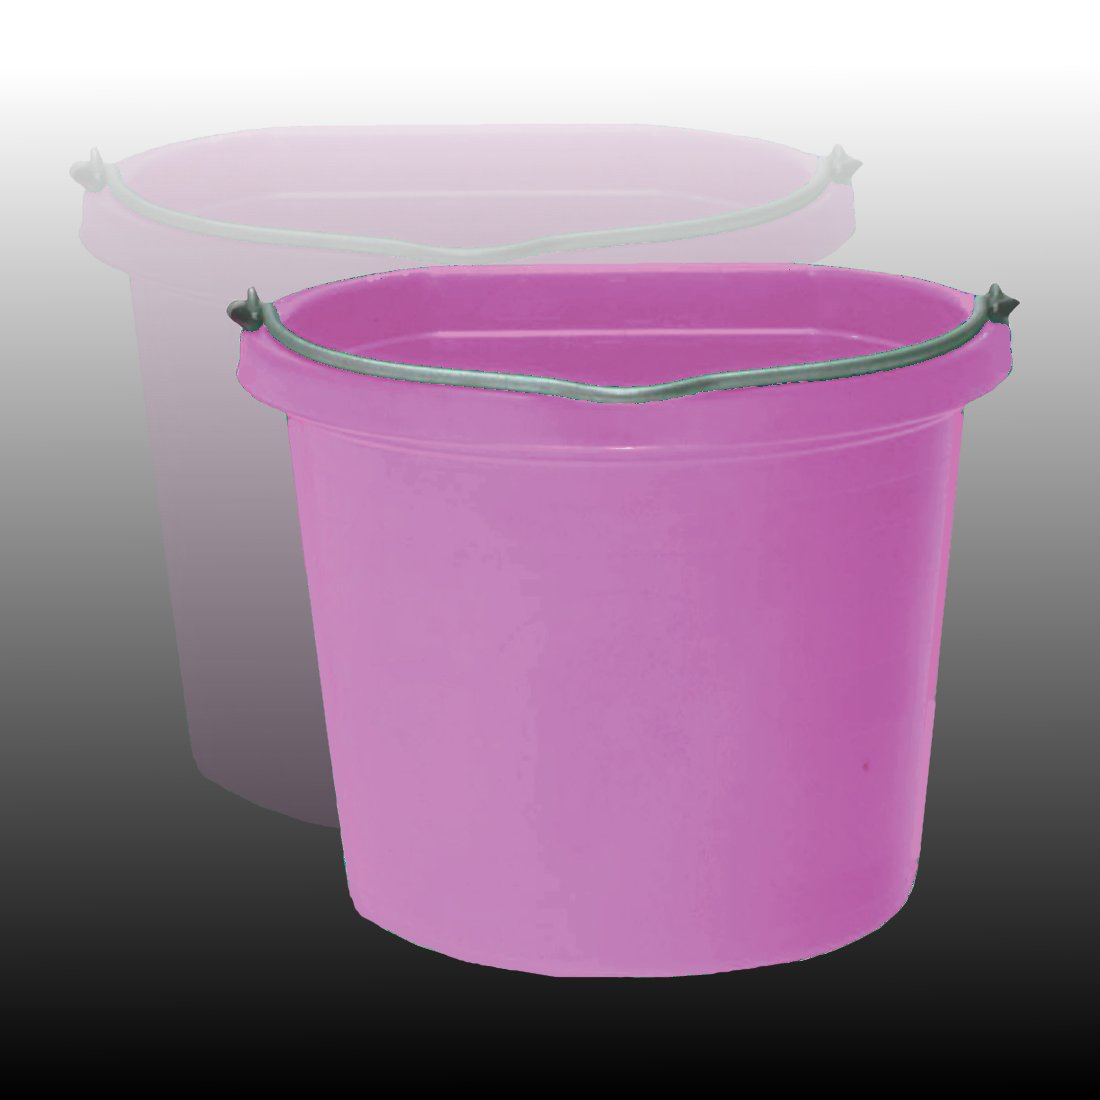 Fortiflex Flat Back Feed Bucket for Dogs/Cats and Small Animals, 20-Quart, Hot Pink